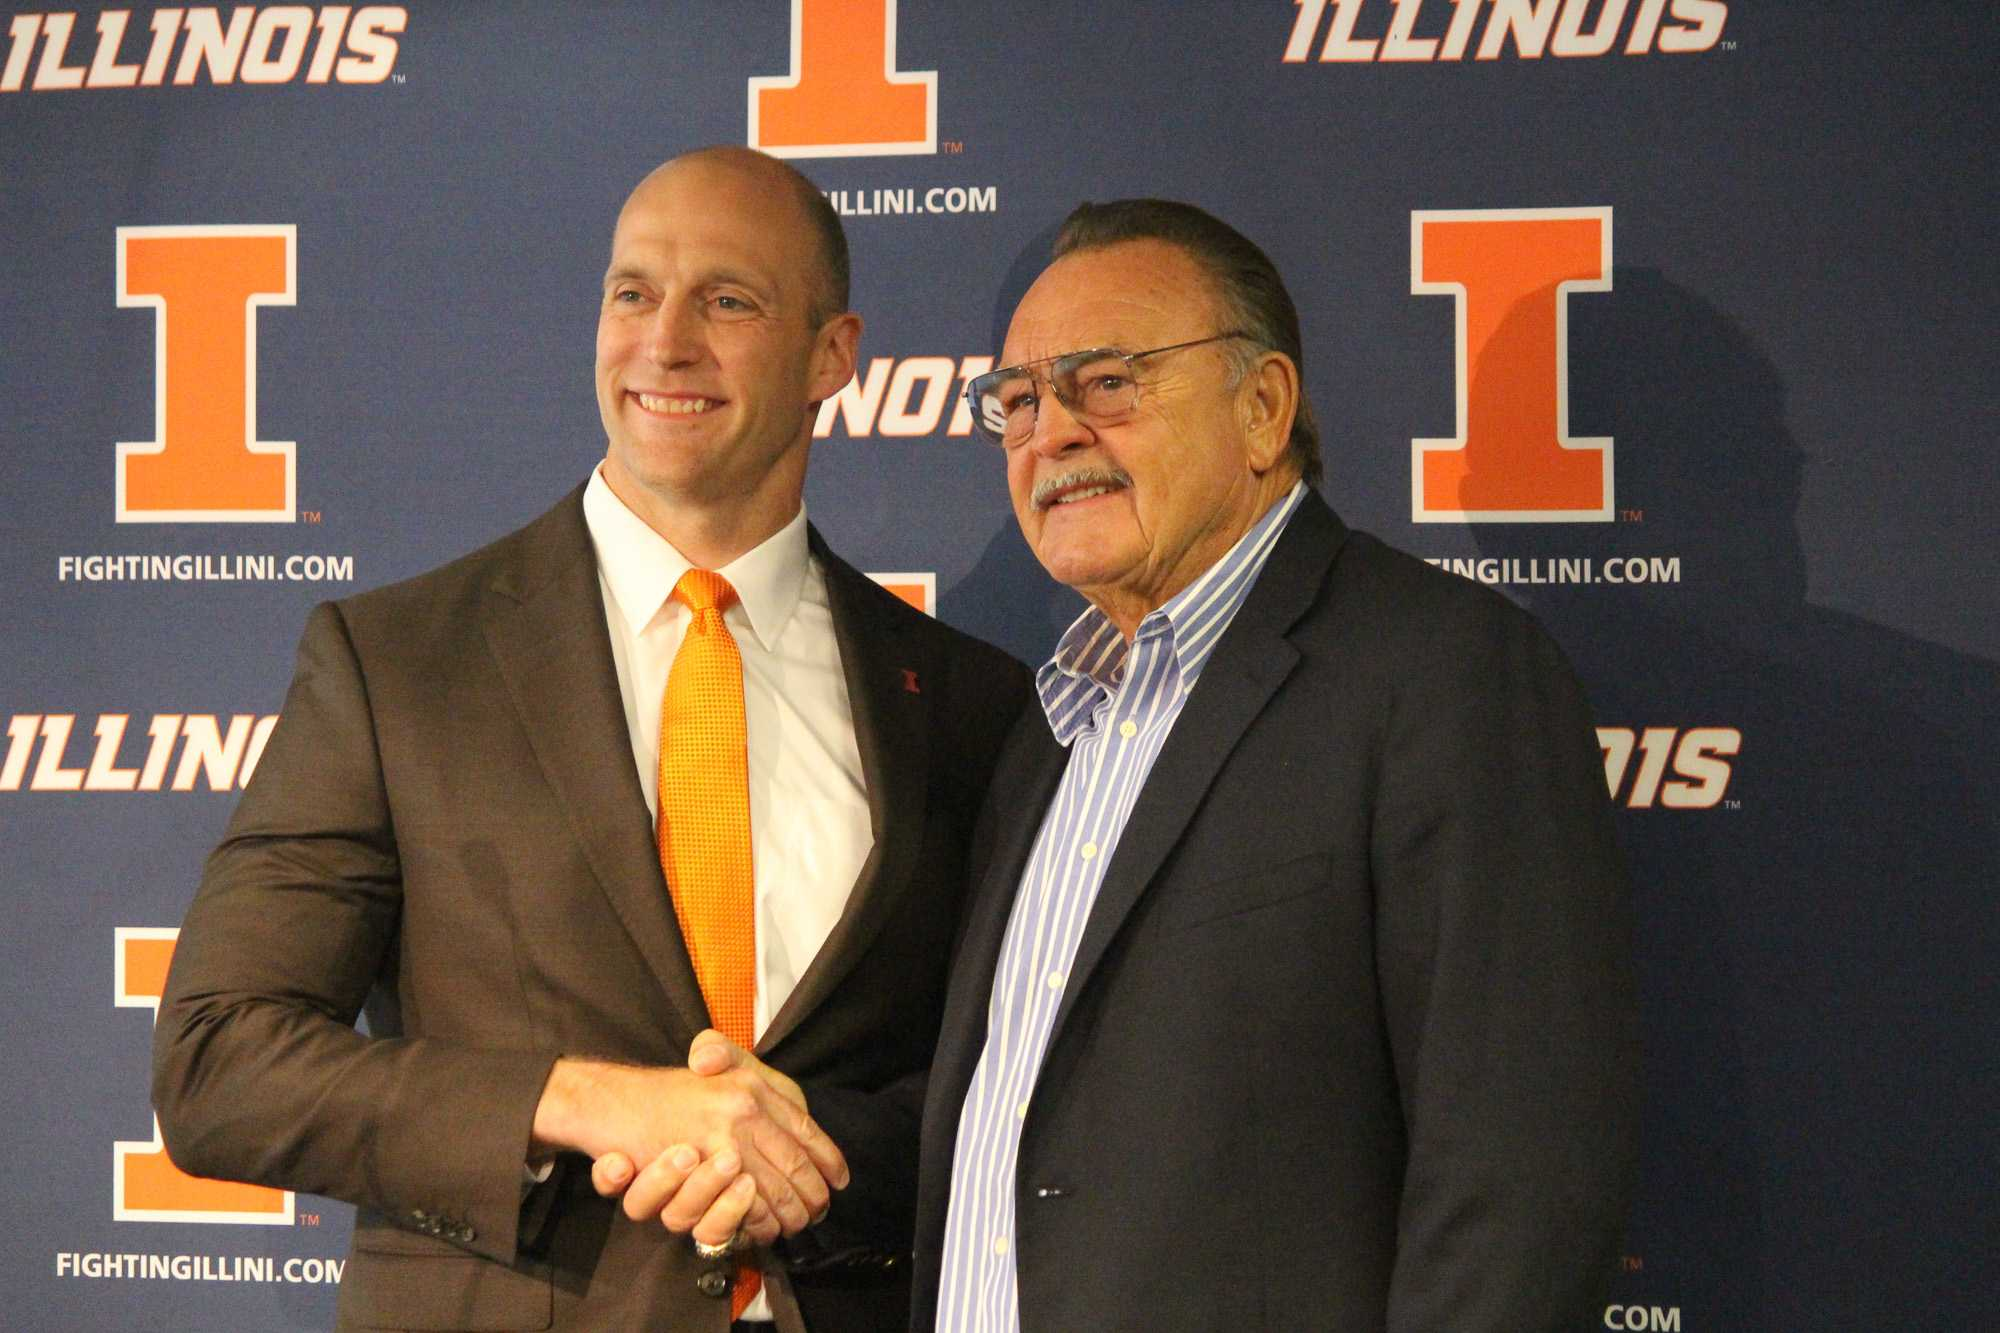 Honoree Dick Butkus shakes hands with Athletic Director Josh Whitman at Memorial Stadium on Thursday.